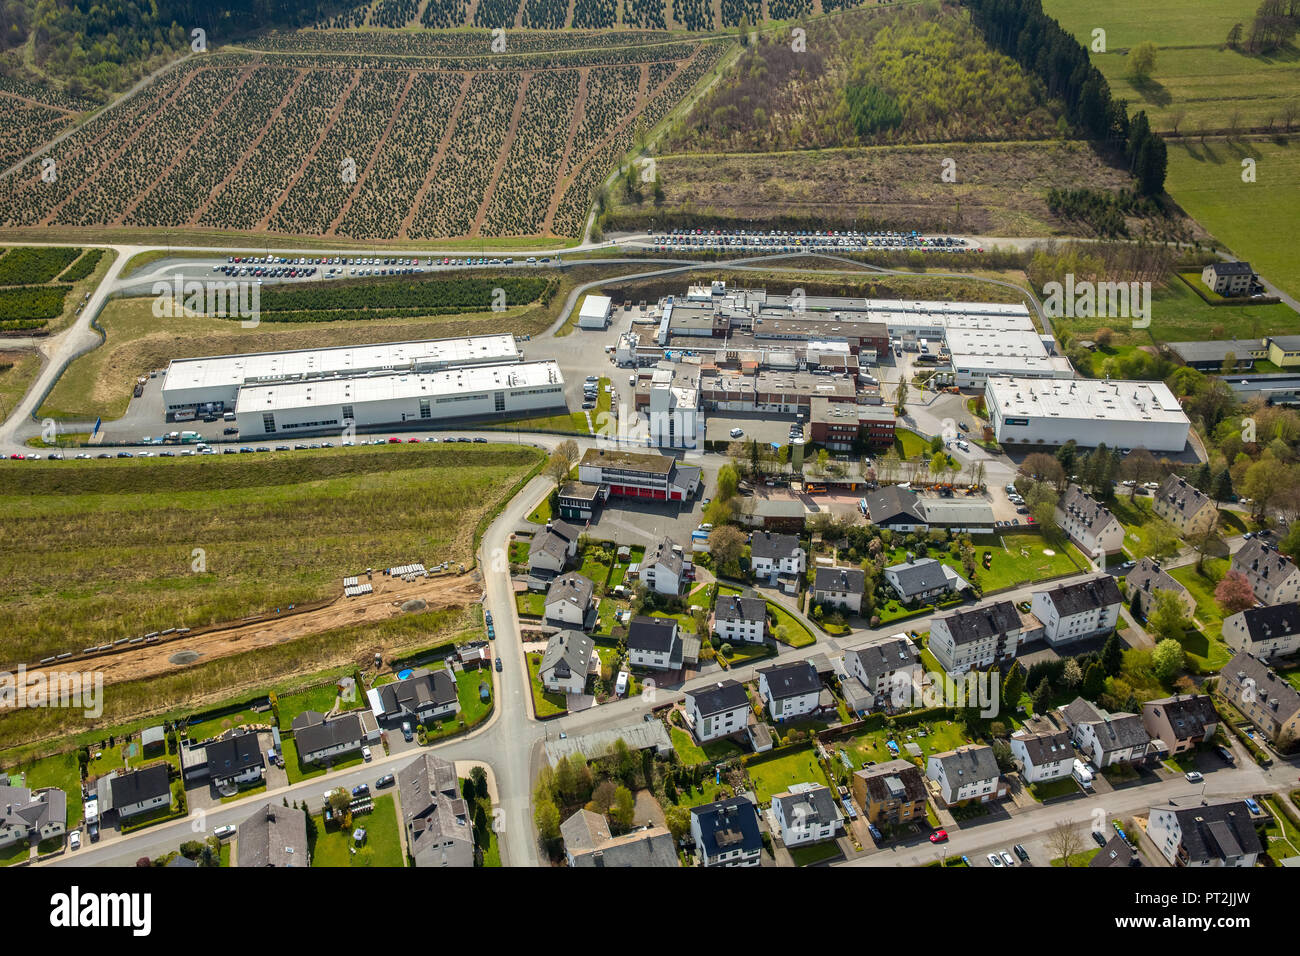 Alcoa Power and Propulsion, www.alcoa.com, Bestwig, Sauerland, North Rhine-Westphalia, Germany - Stock Image